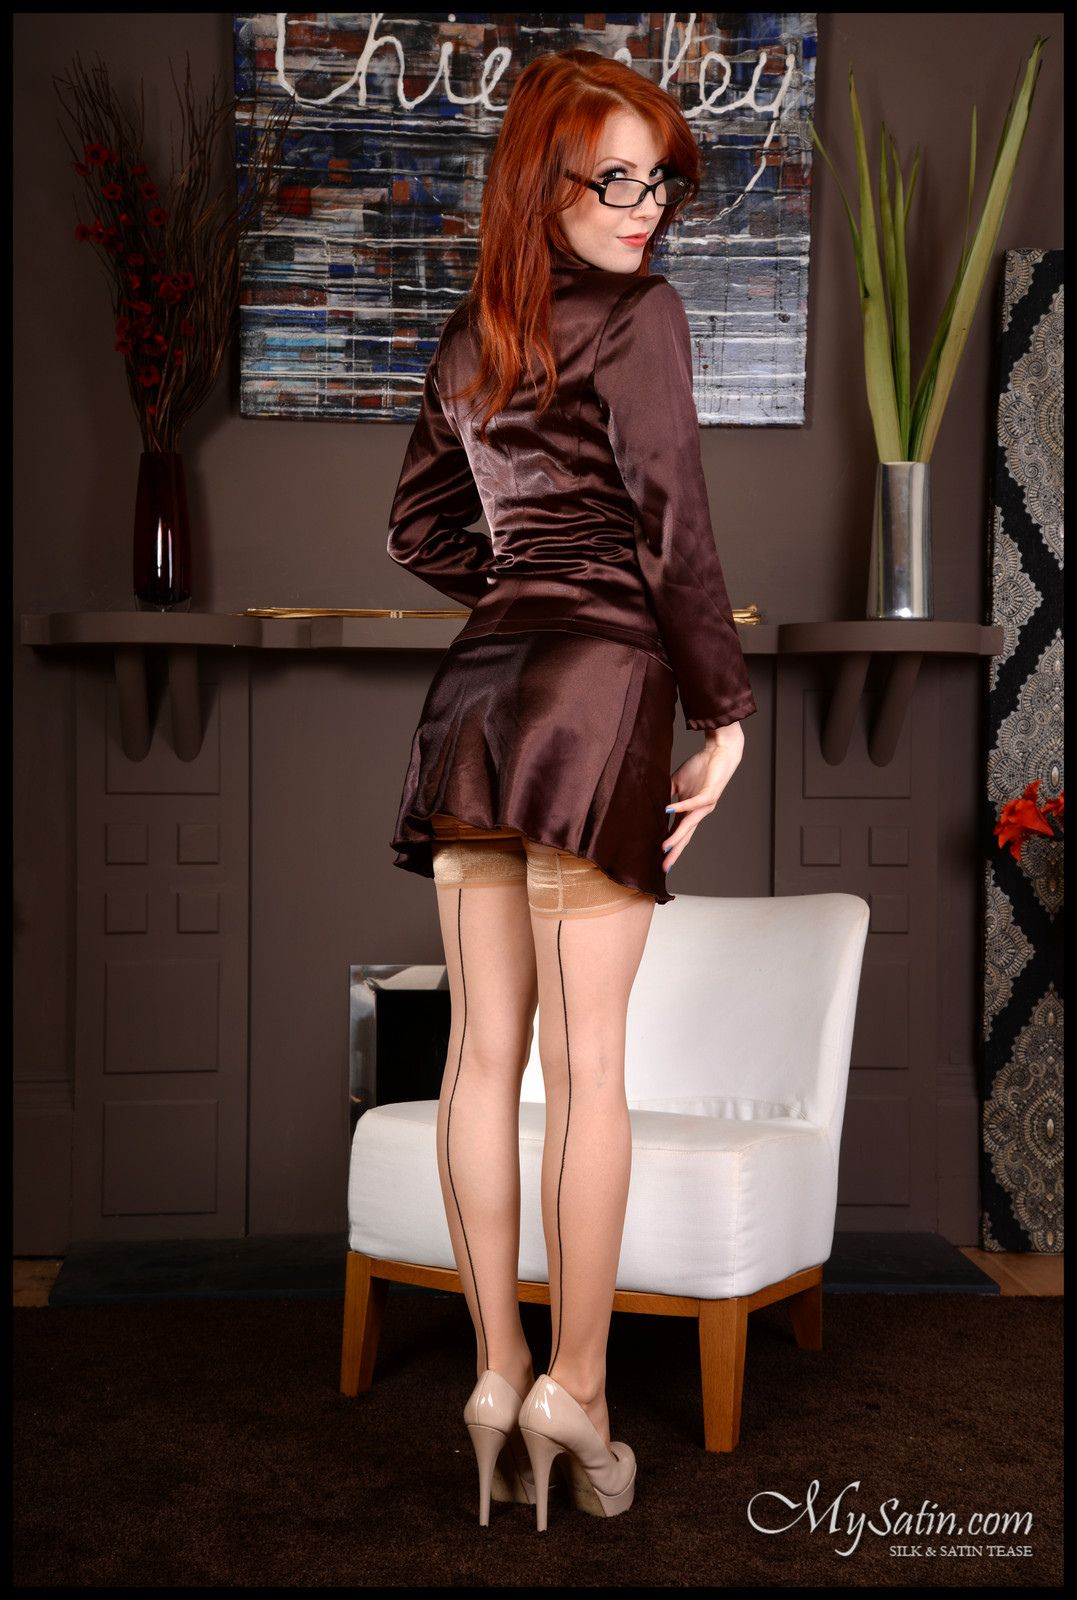 The seamed stockings make this outfit!